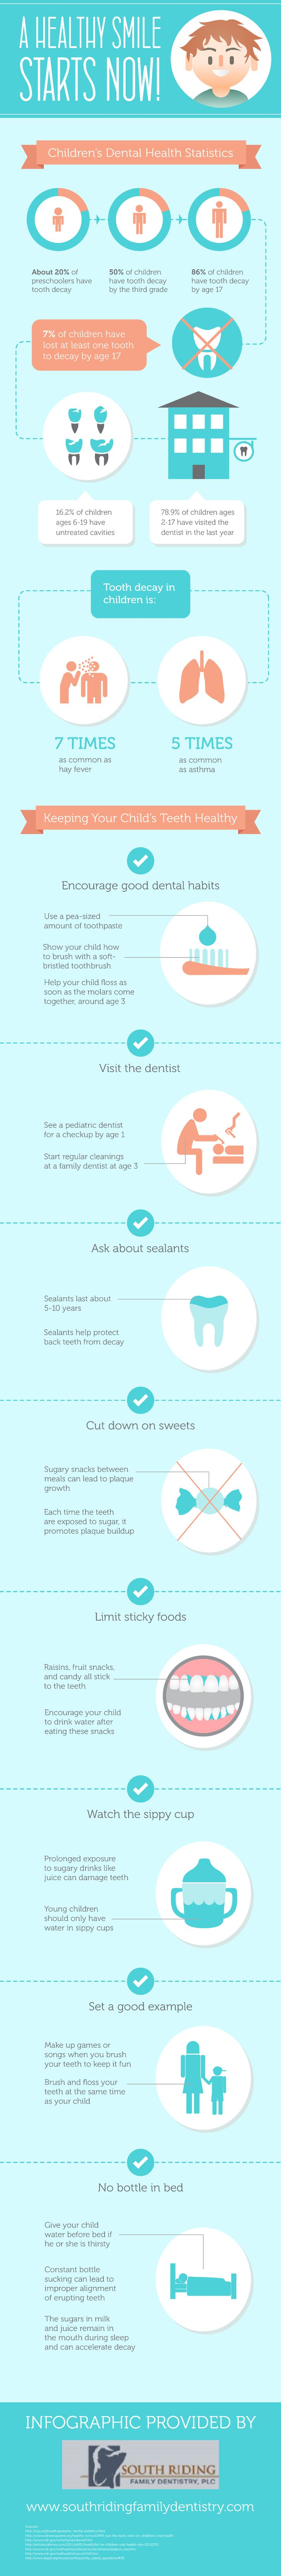 best 25 dental kids ideas on pinterest kids dental care dental